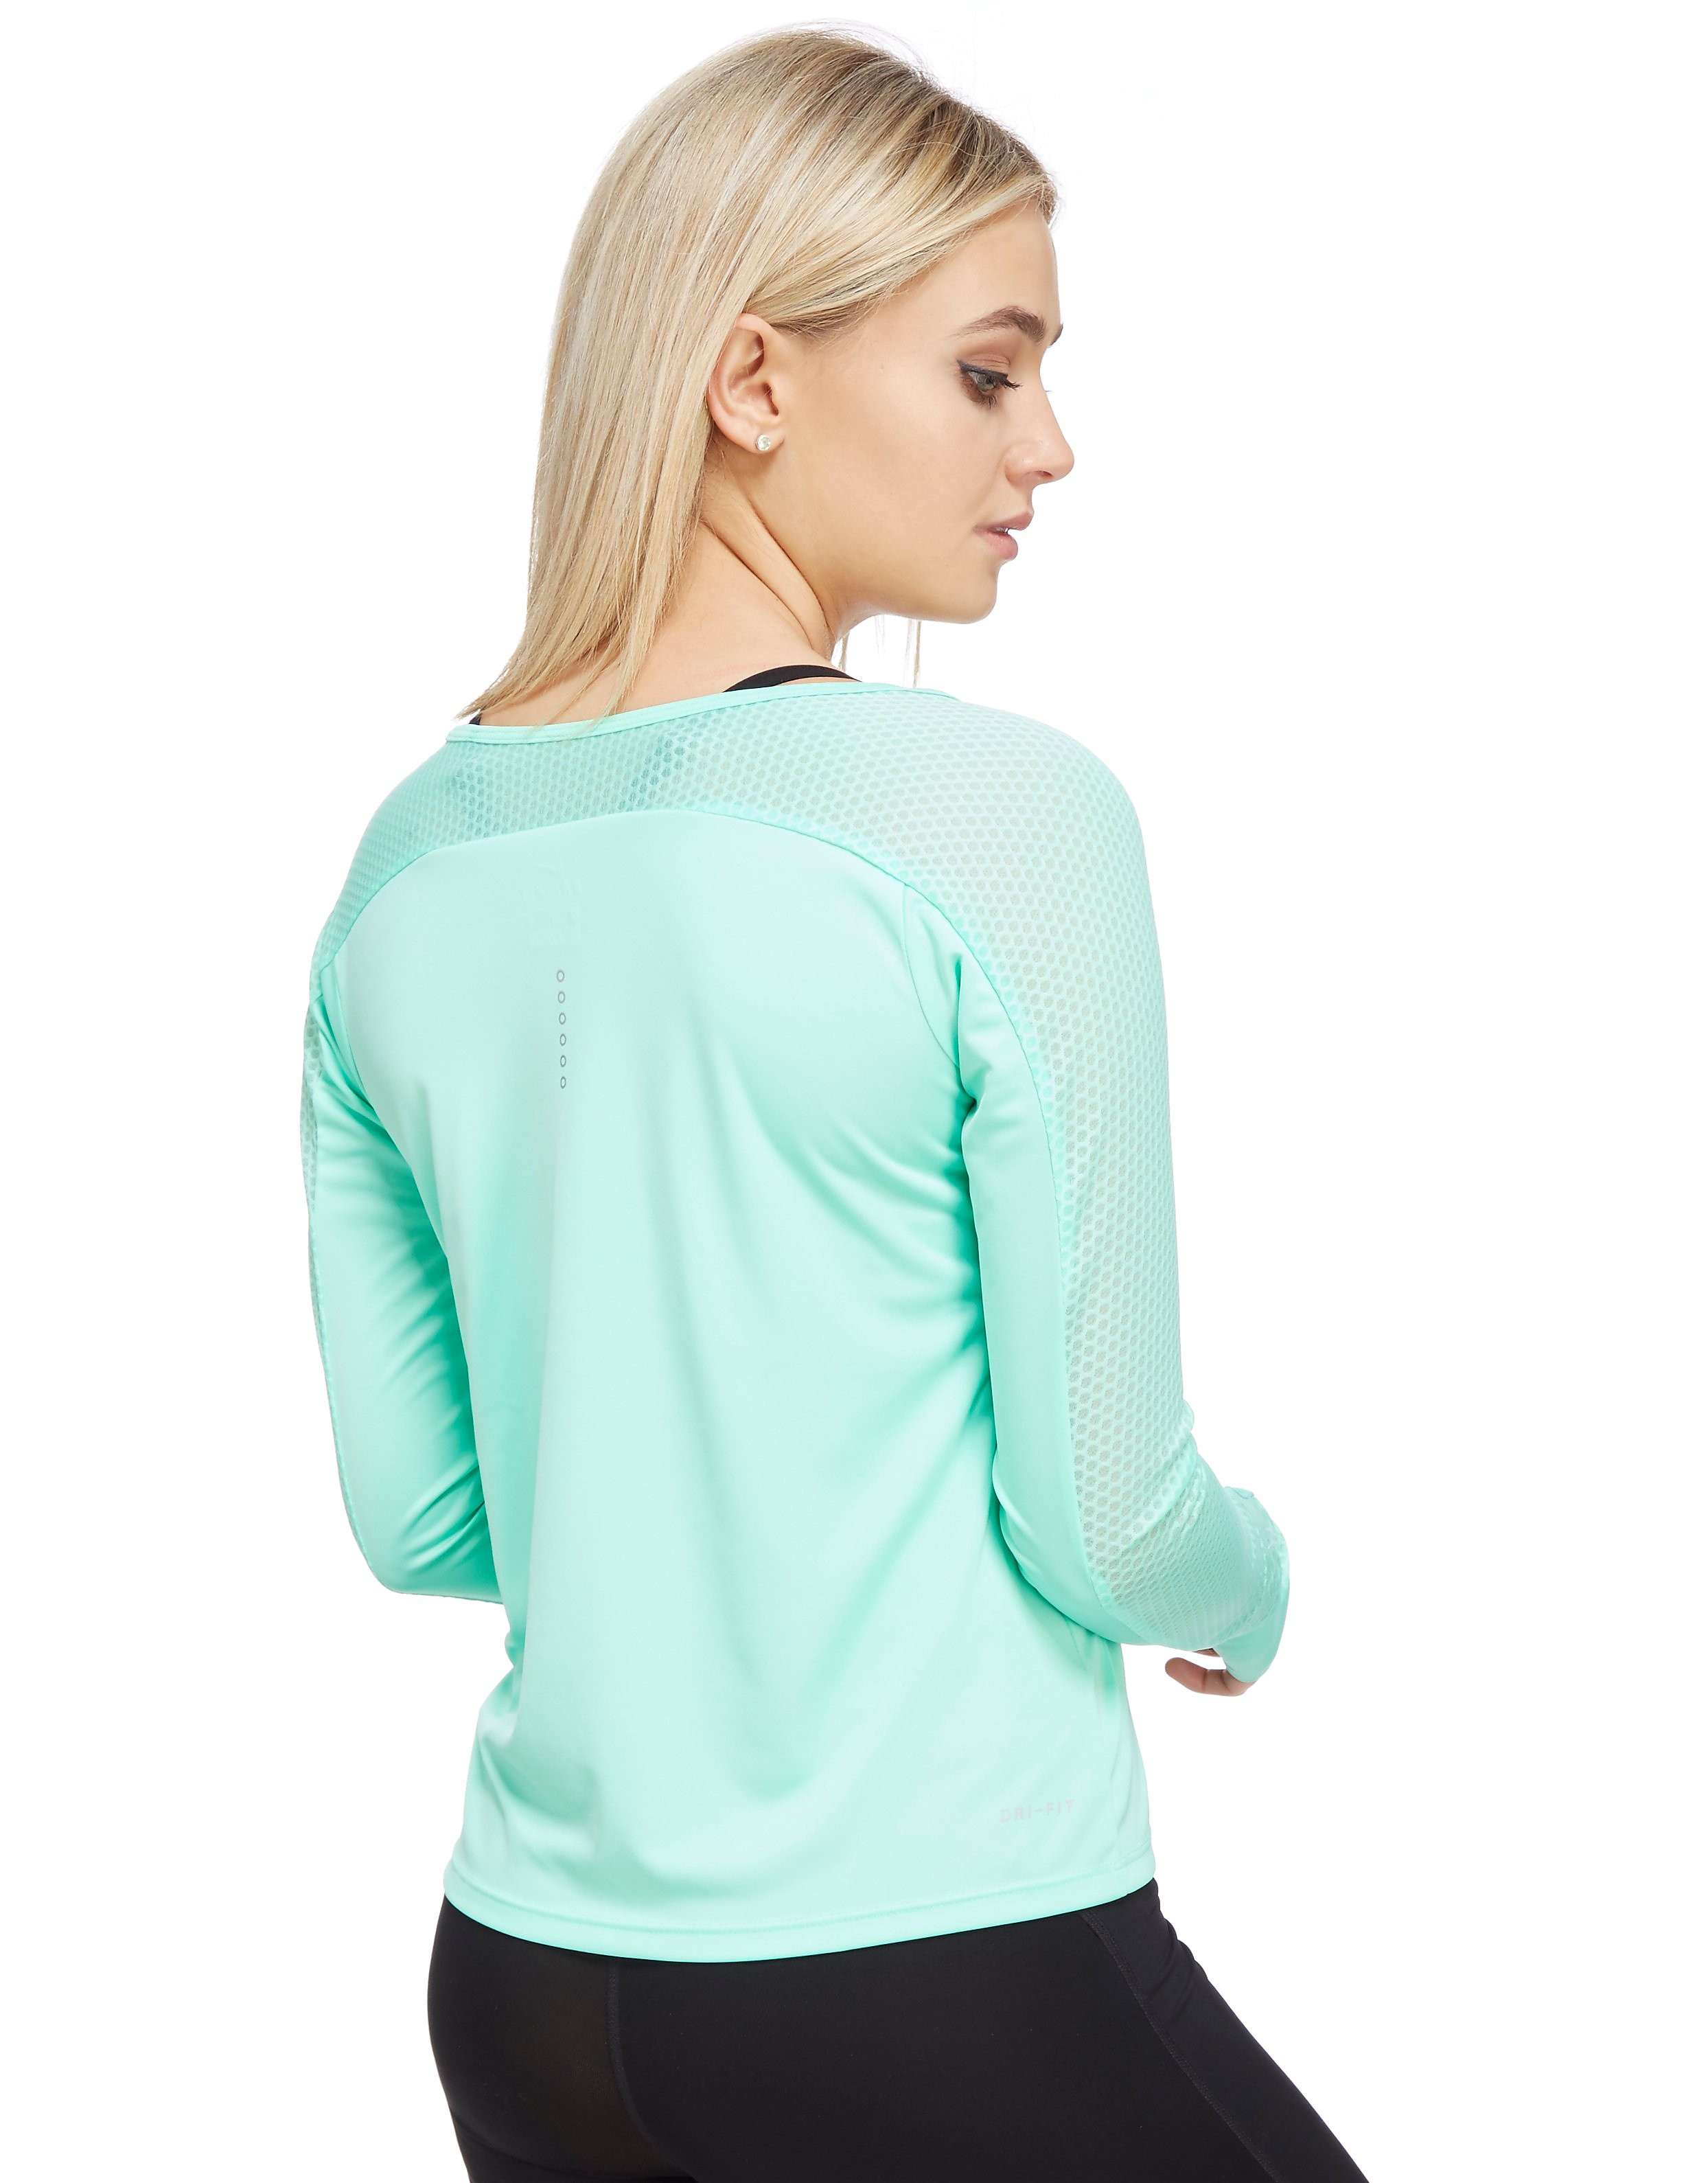 Nike Run Fast Longsleeve Top